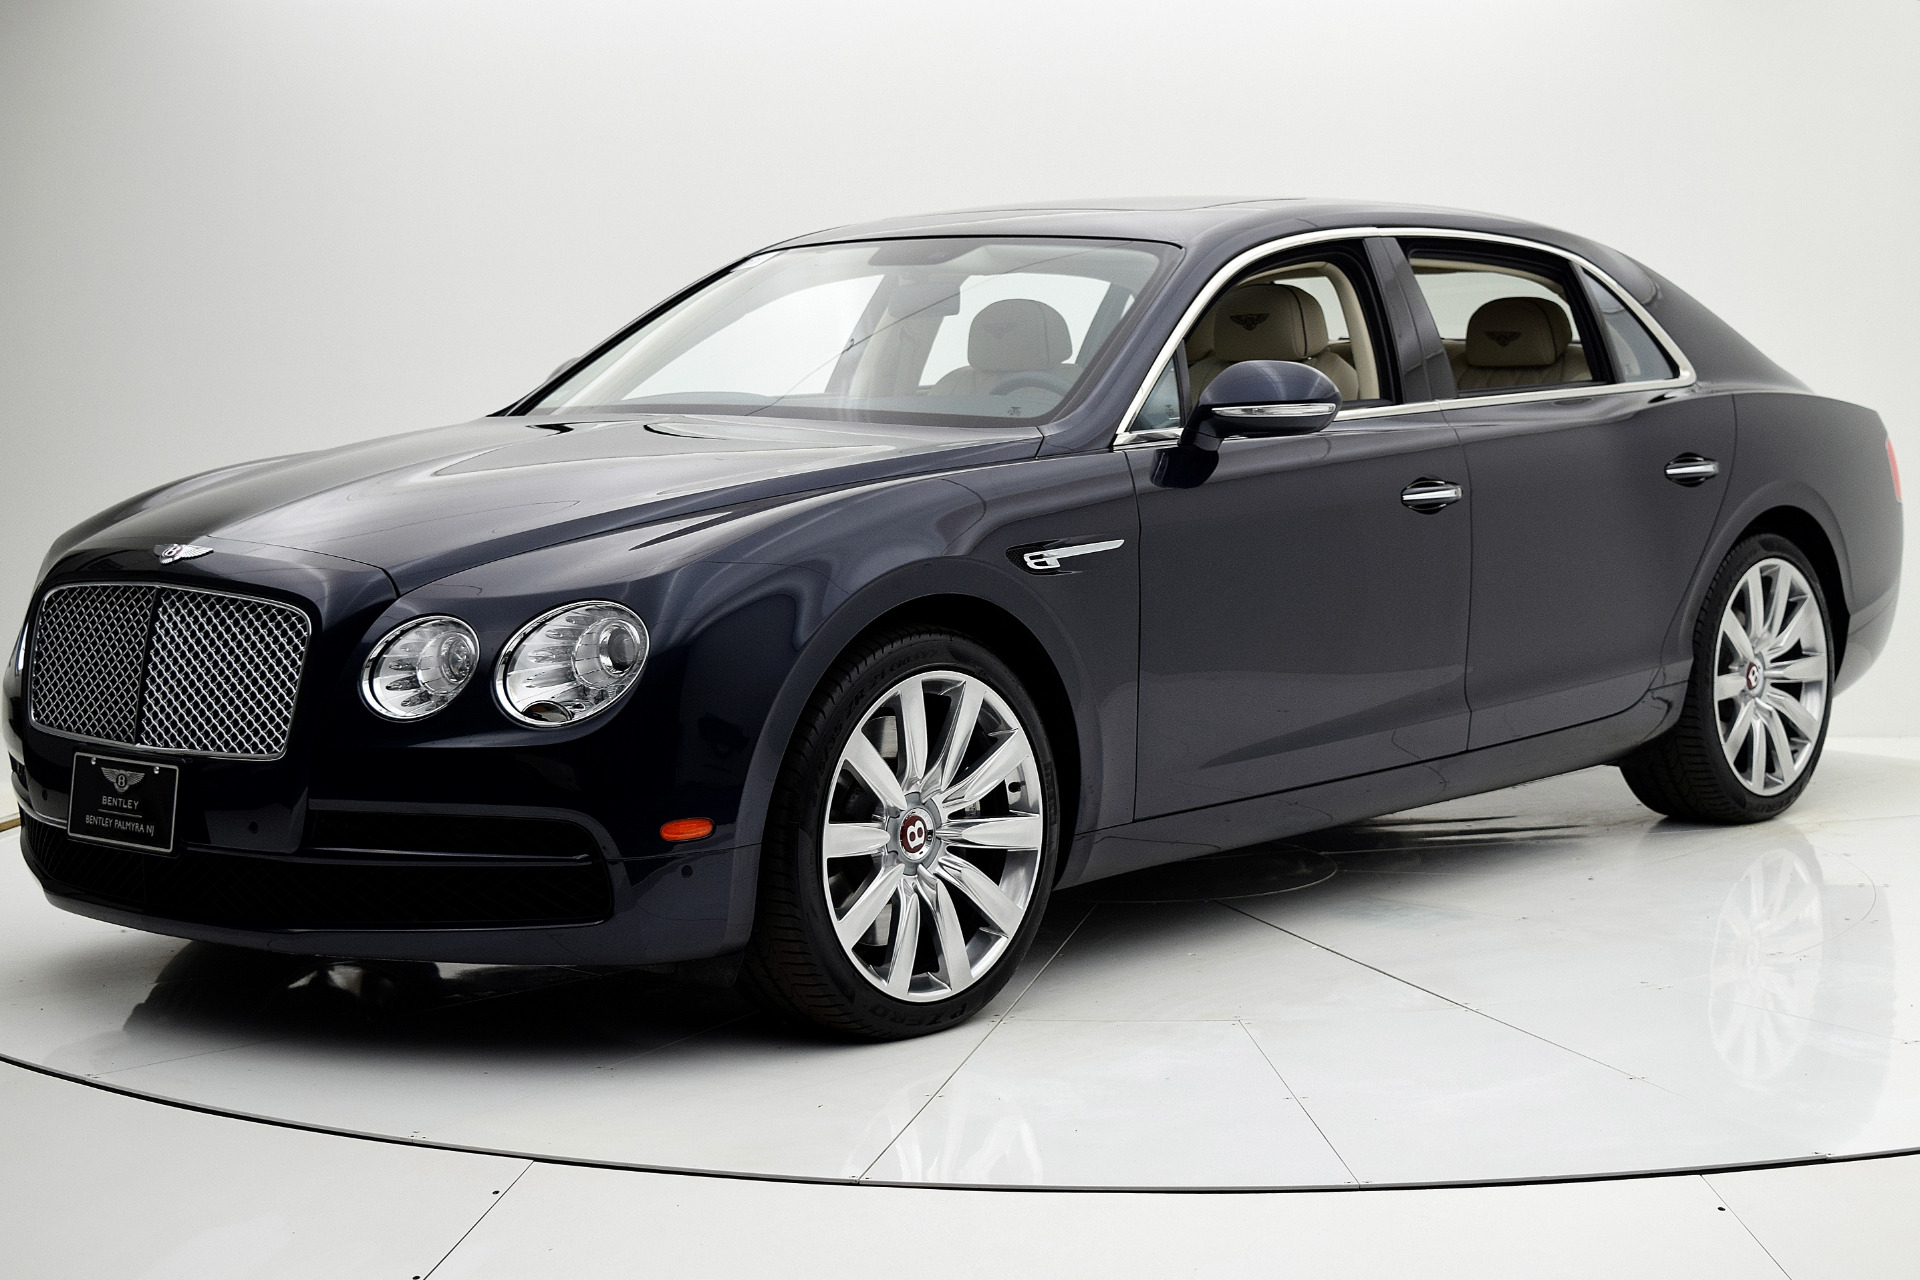 Used 2015 Bentley Flying Spur V8 for sale $112,880 at F.C. Kerbeck Aston Martin in Palmyra NJ 08065 2